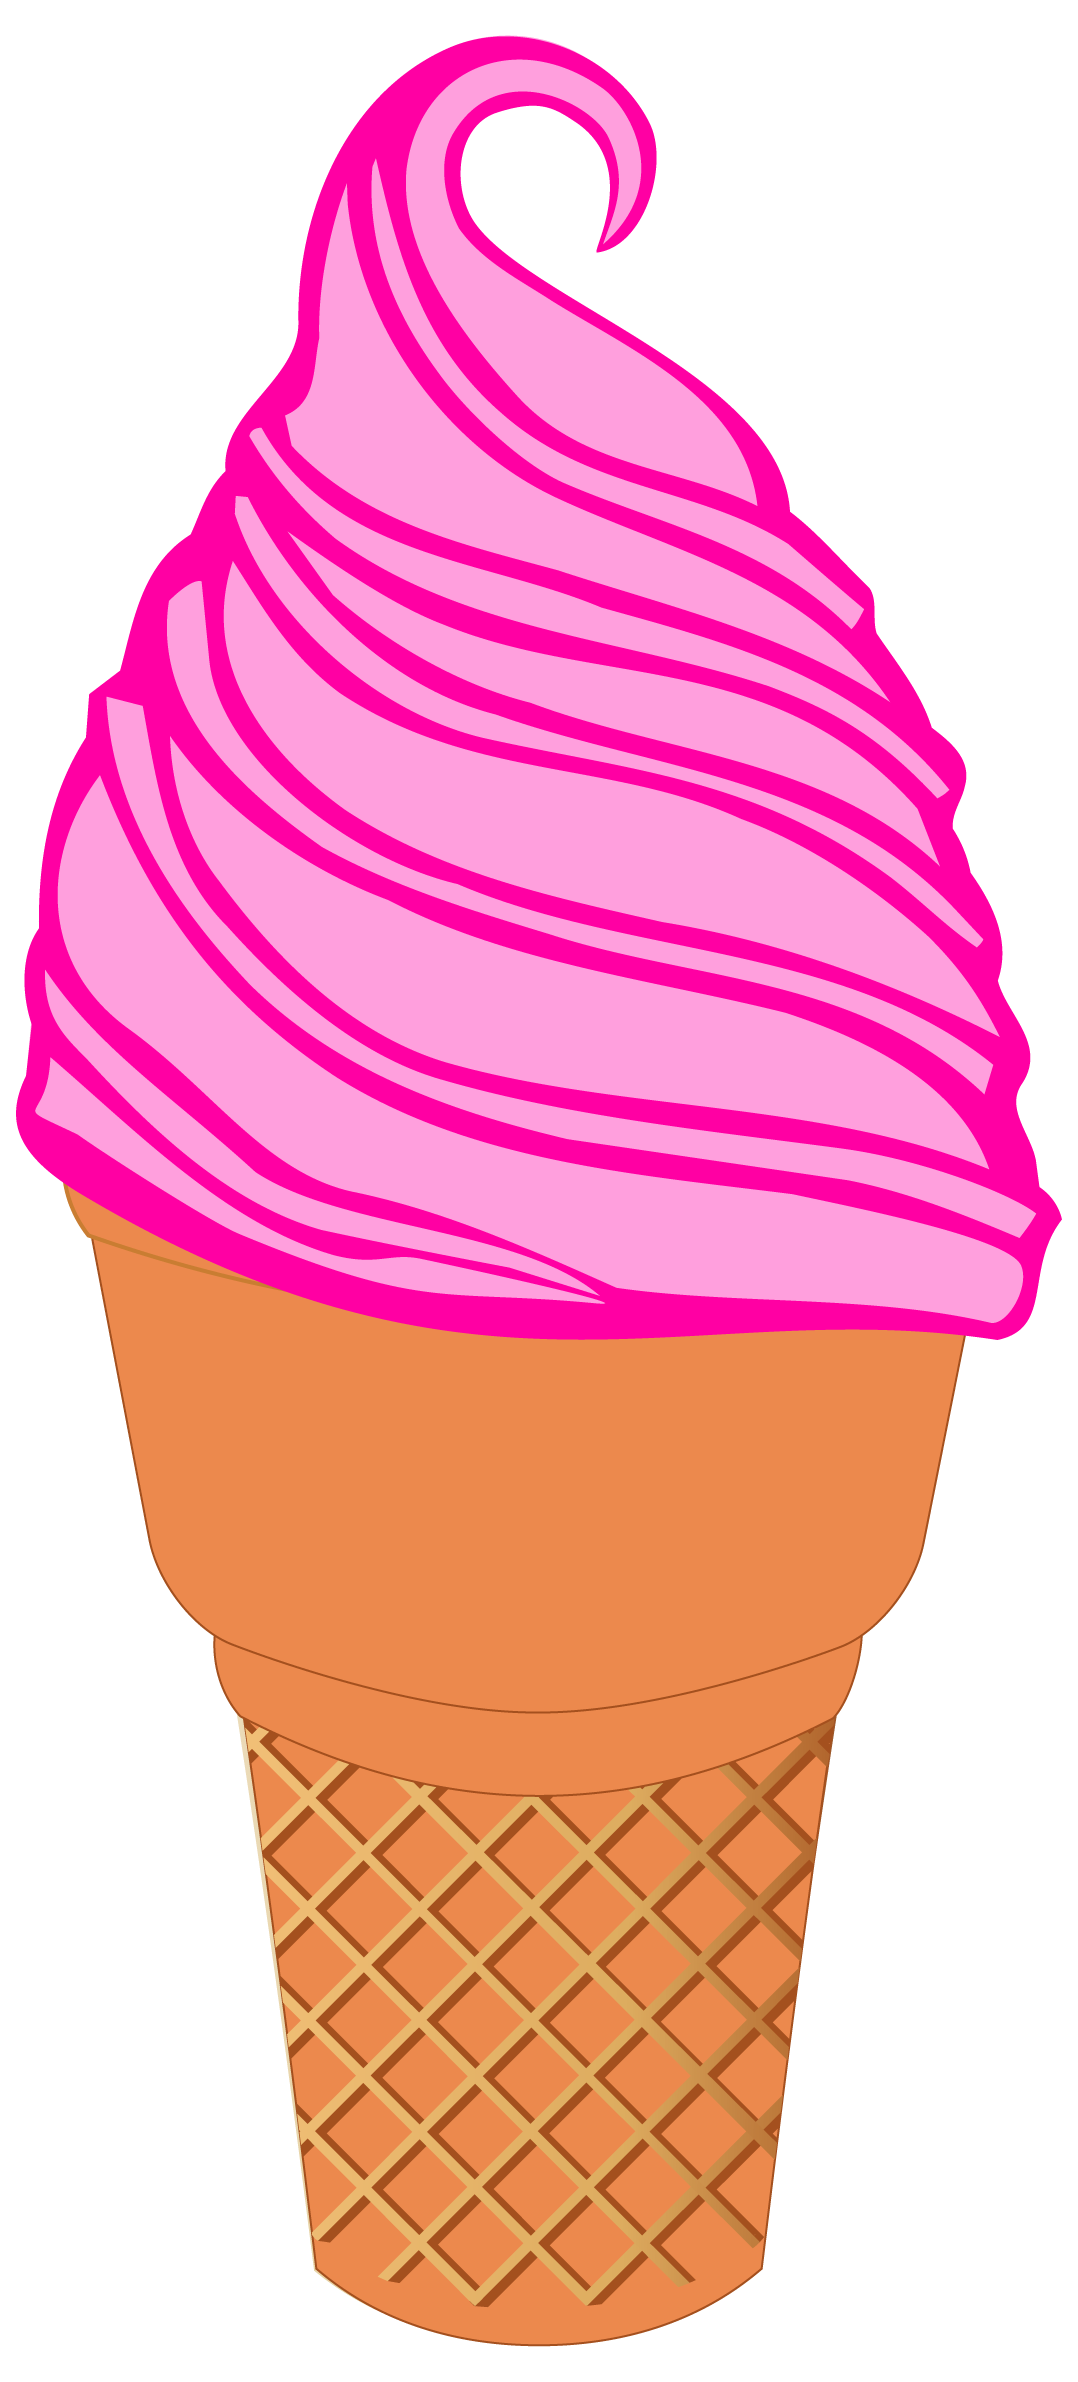 Surfboard with transparent background clipart image free stock 10 Ice cream clipart Nº2 - PNG - transparent background - 300 DPI ... image free stock